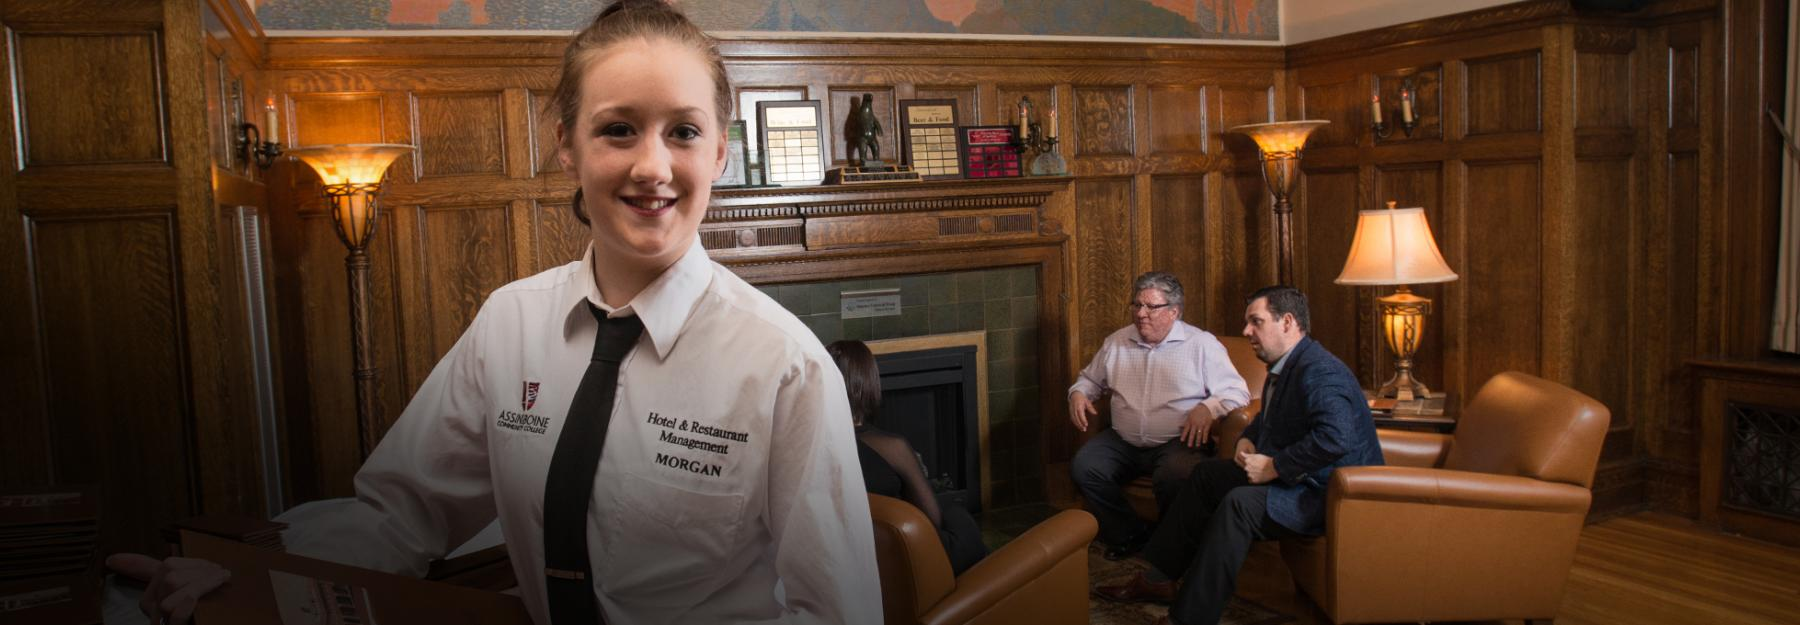 Hotel & Restaurant Management student greets guests at the Great Grey Owl Restaurant